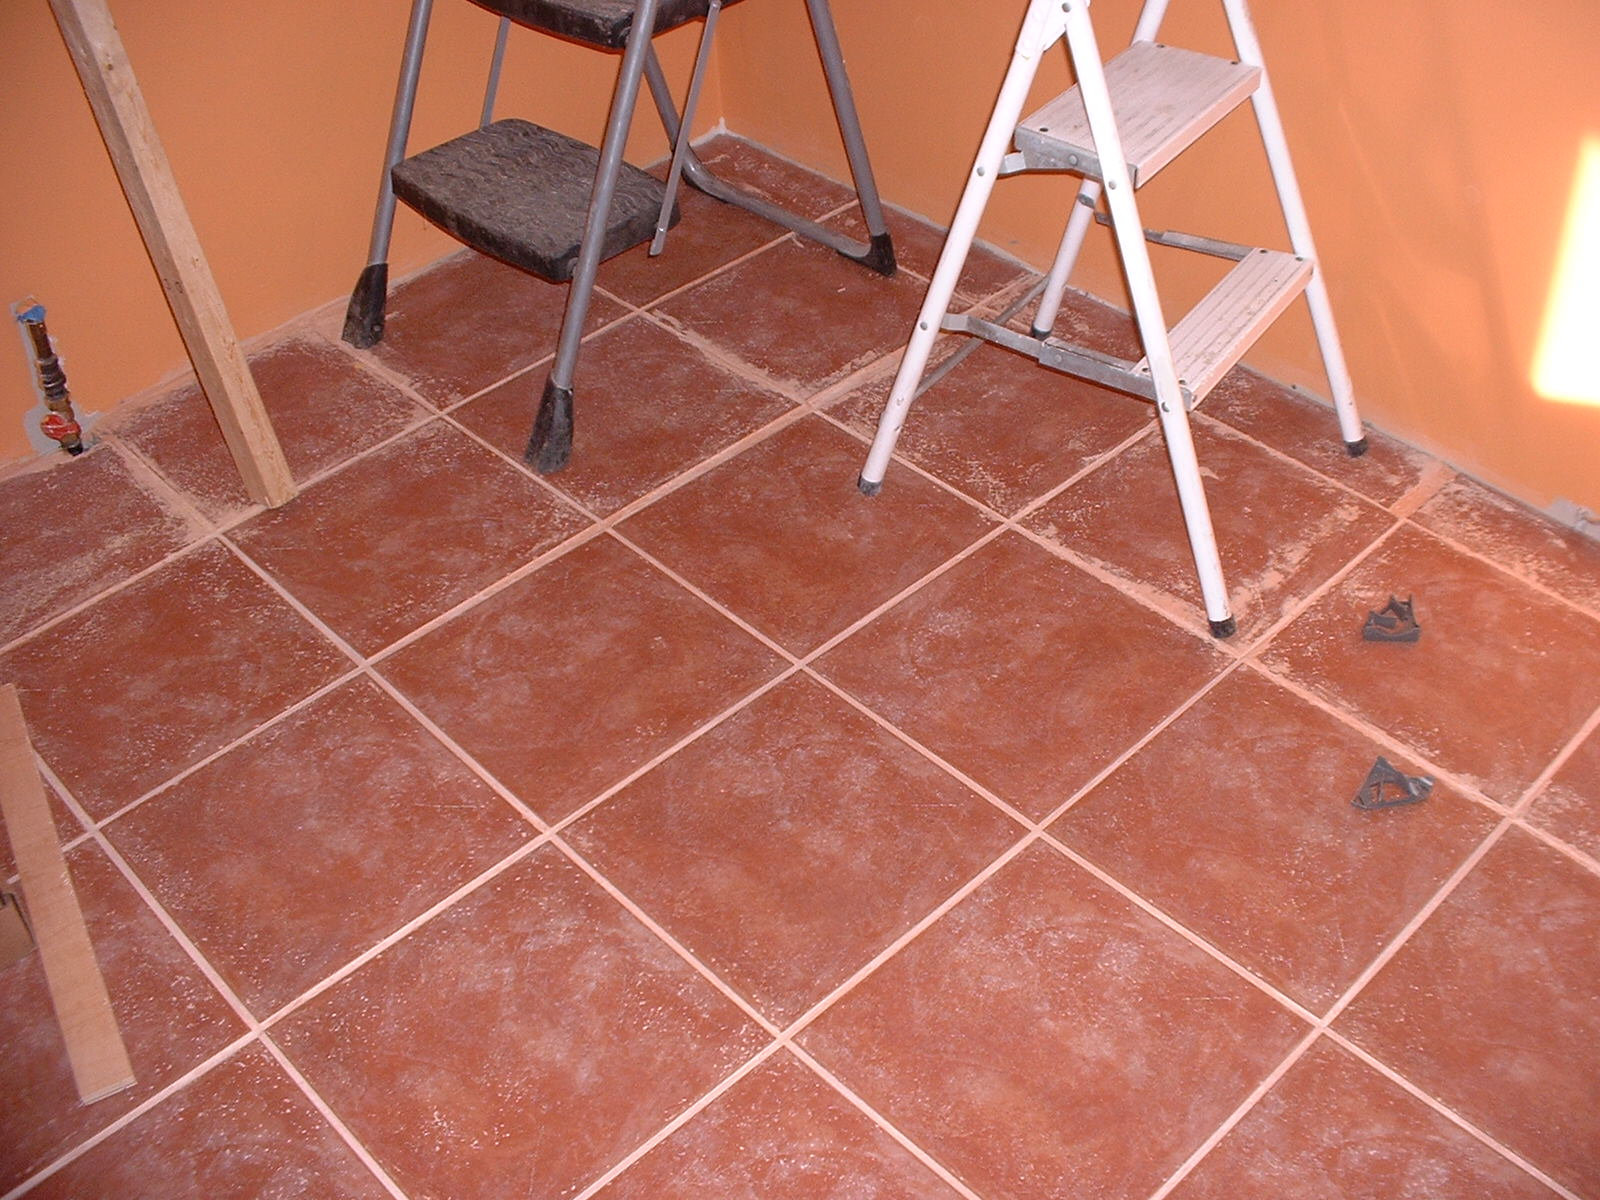 This is the tile work that the Owners did over the weekend.